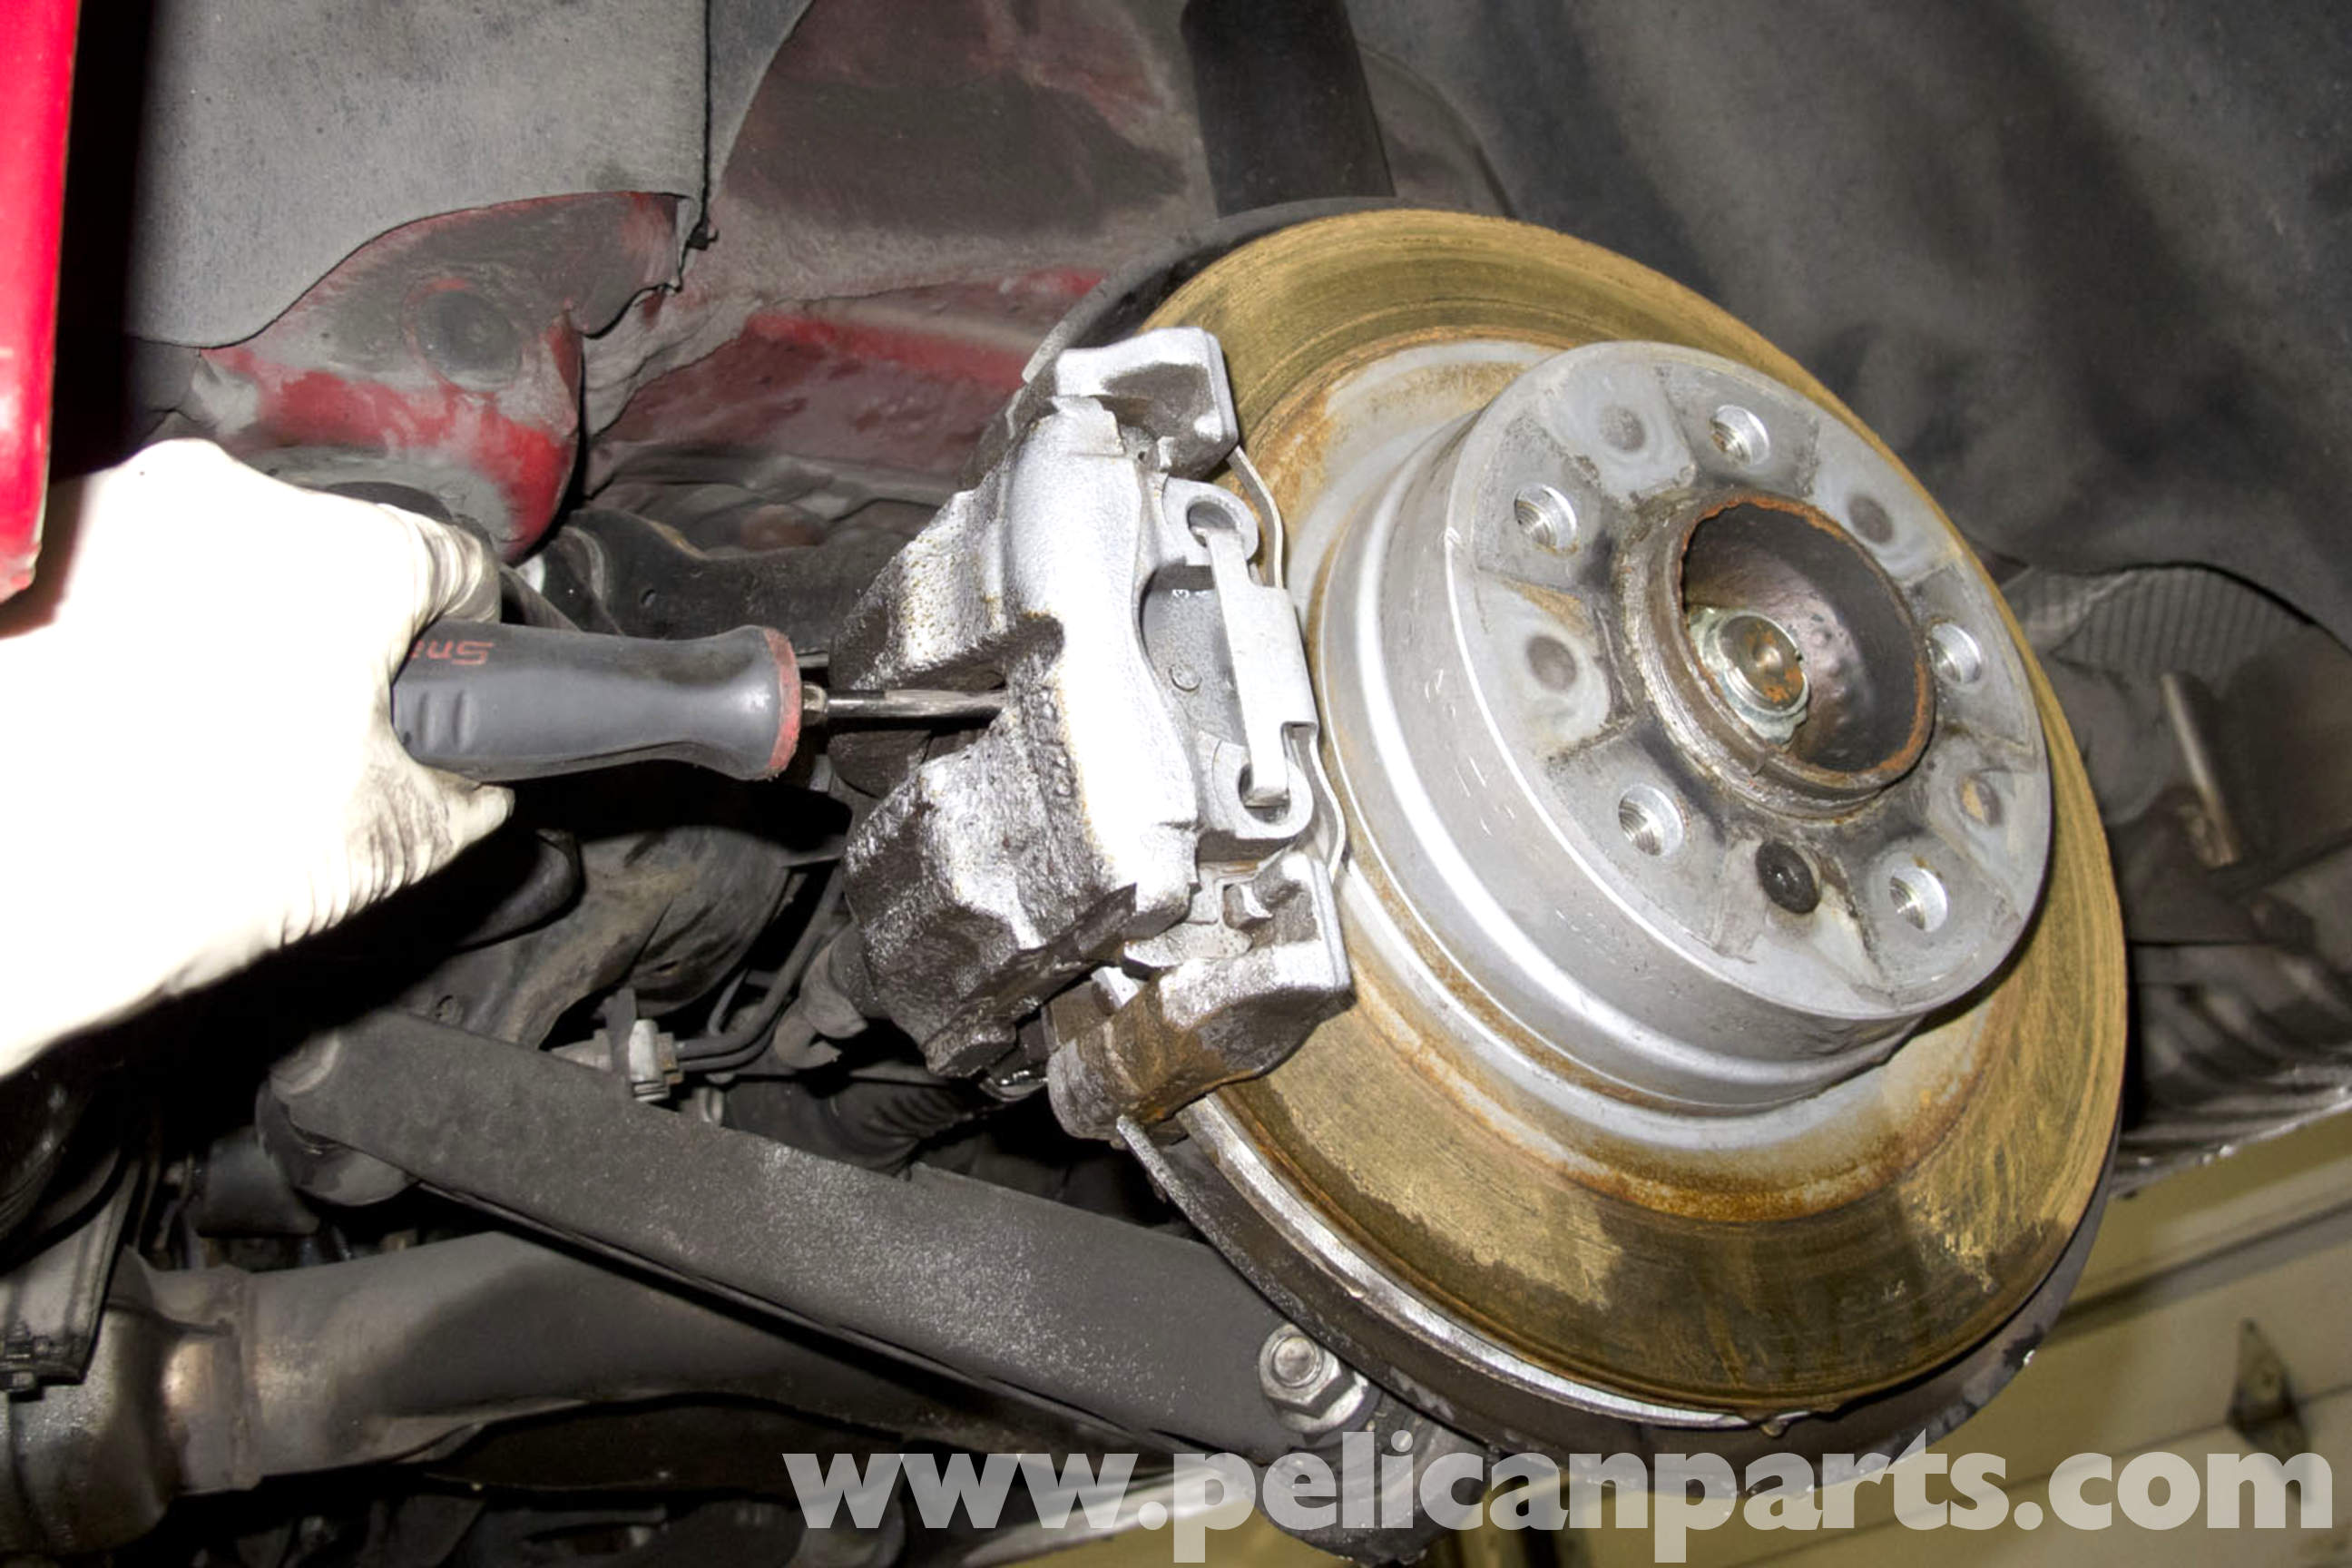 BMW E90 Parking Brake Shoes Replacement | E91, E92, E93 | Pelican